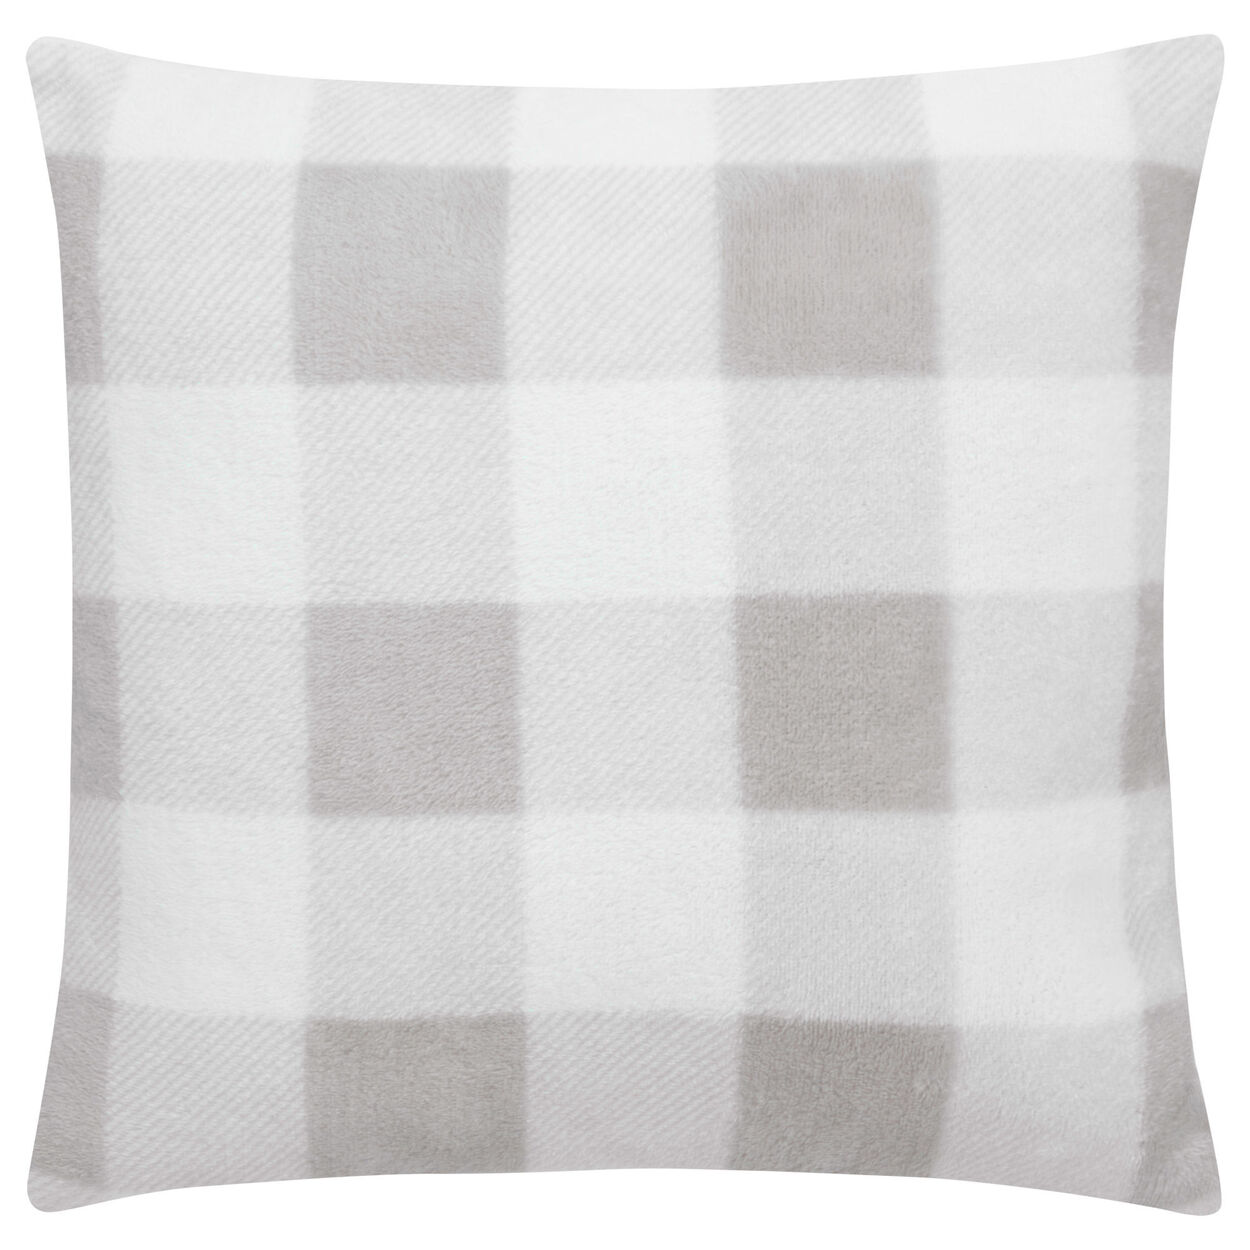 "Robin Plaid Fleece Decorative Pillow 15"" X 15"""